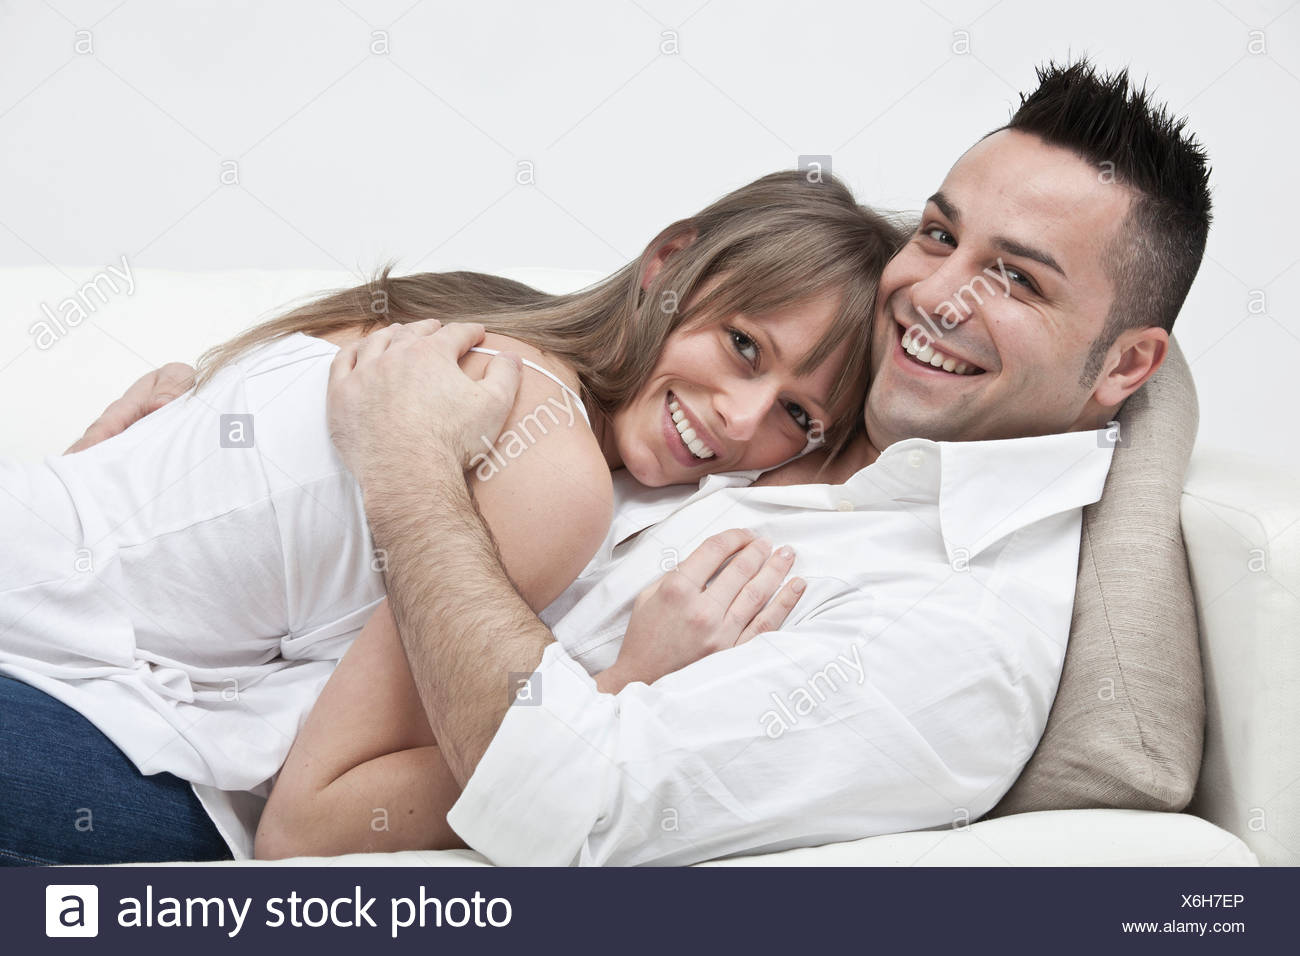 Smiling couple hugging on couch - Stock Image